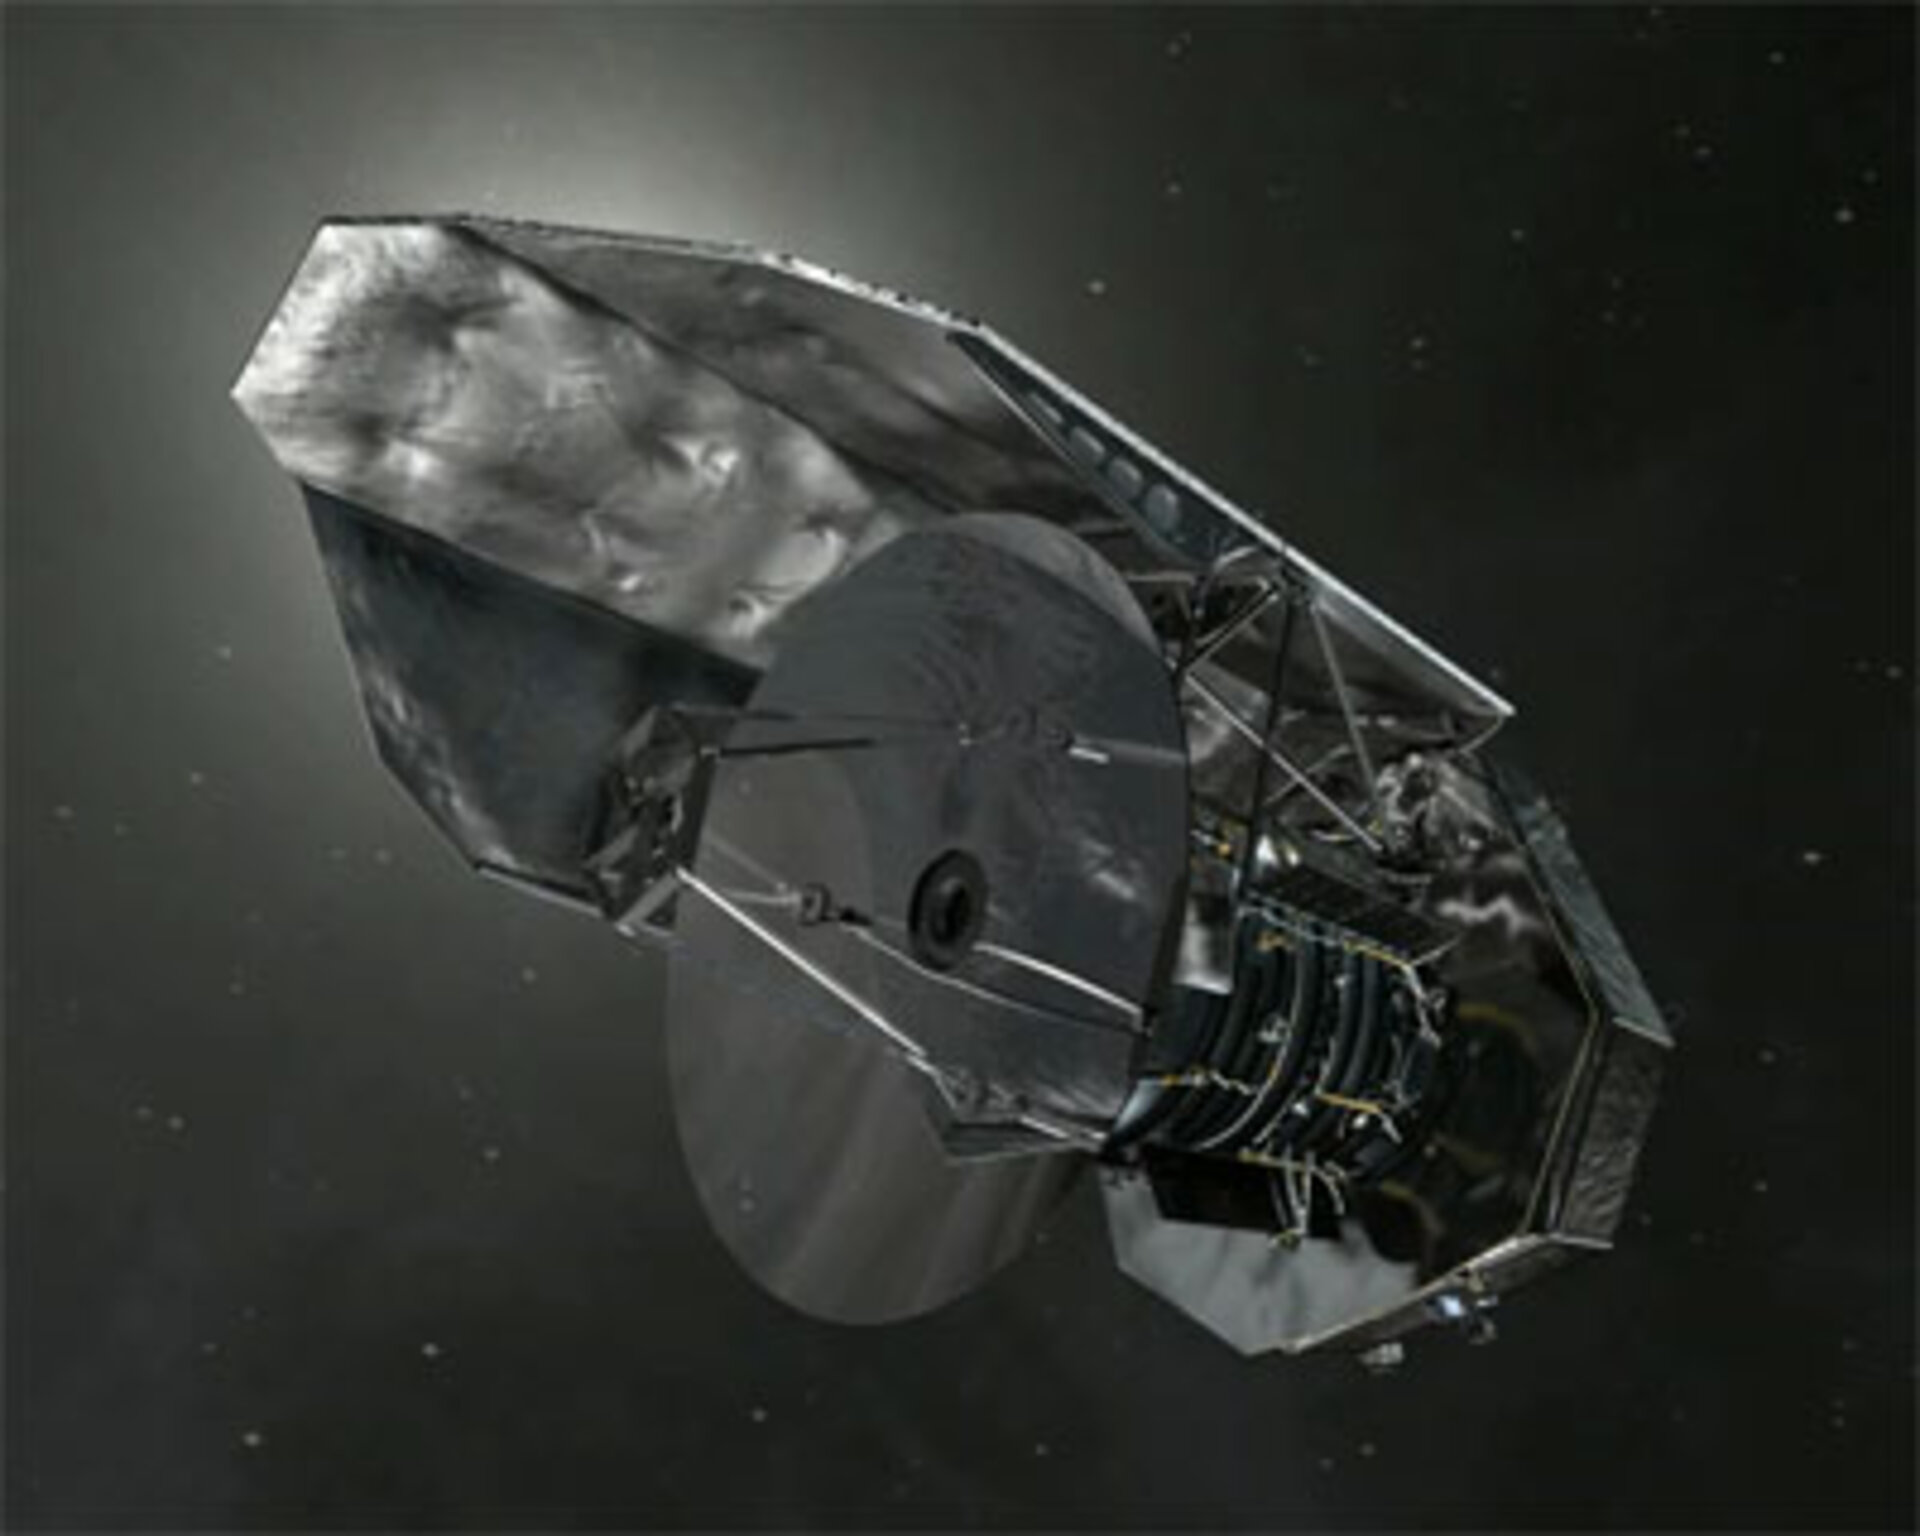 Herschel in space, close up on its mirror